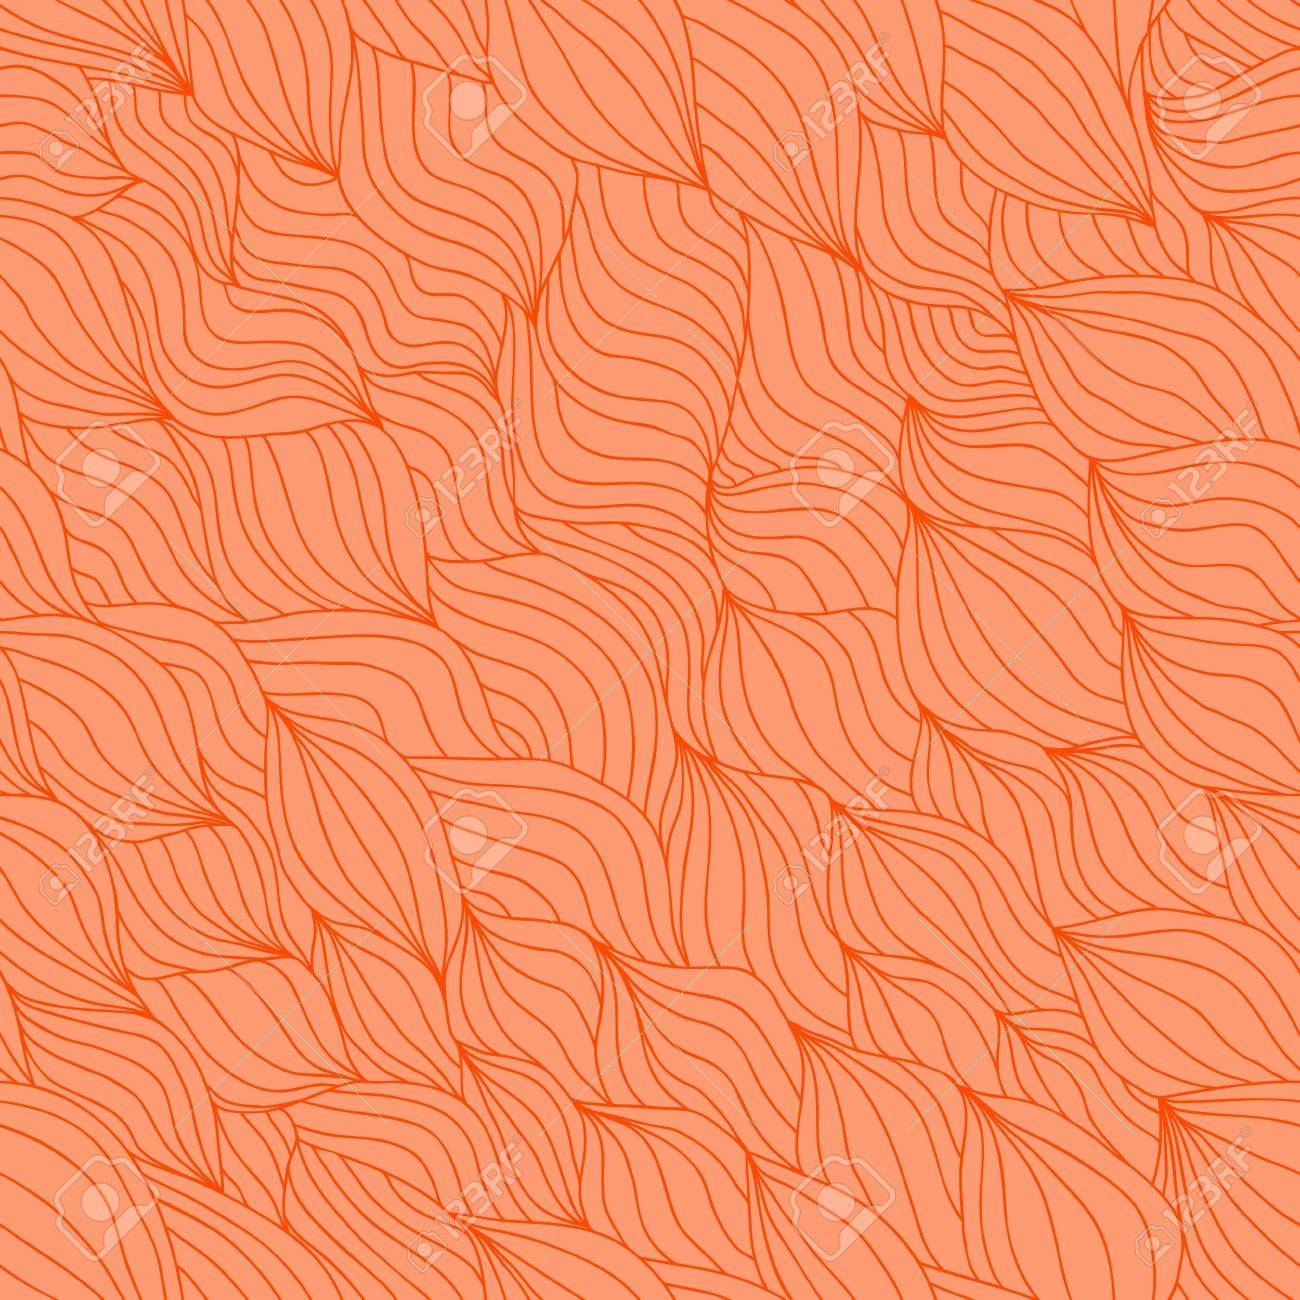 Artistic wavy hand drawn seamless pattern for your design  Saffron yellow variant Stock Vector - 16710478